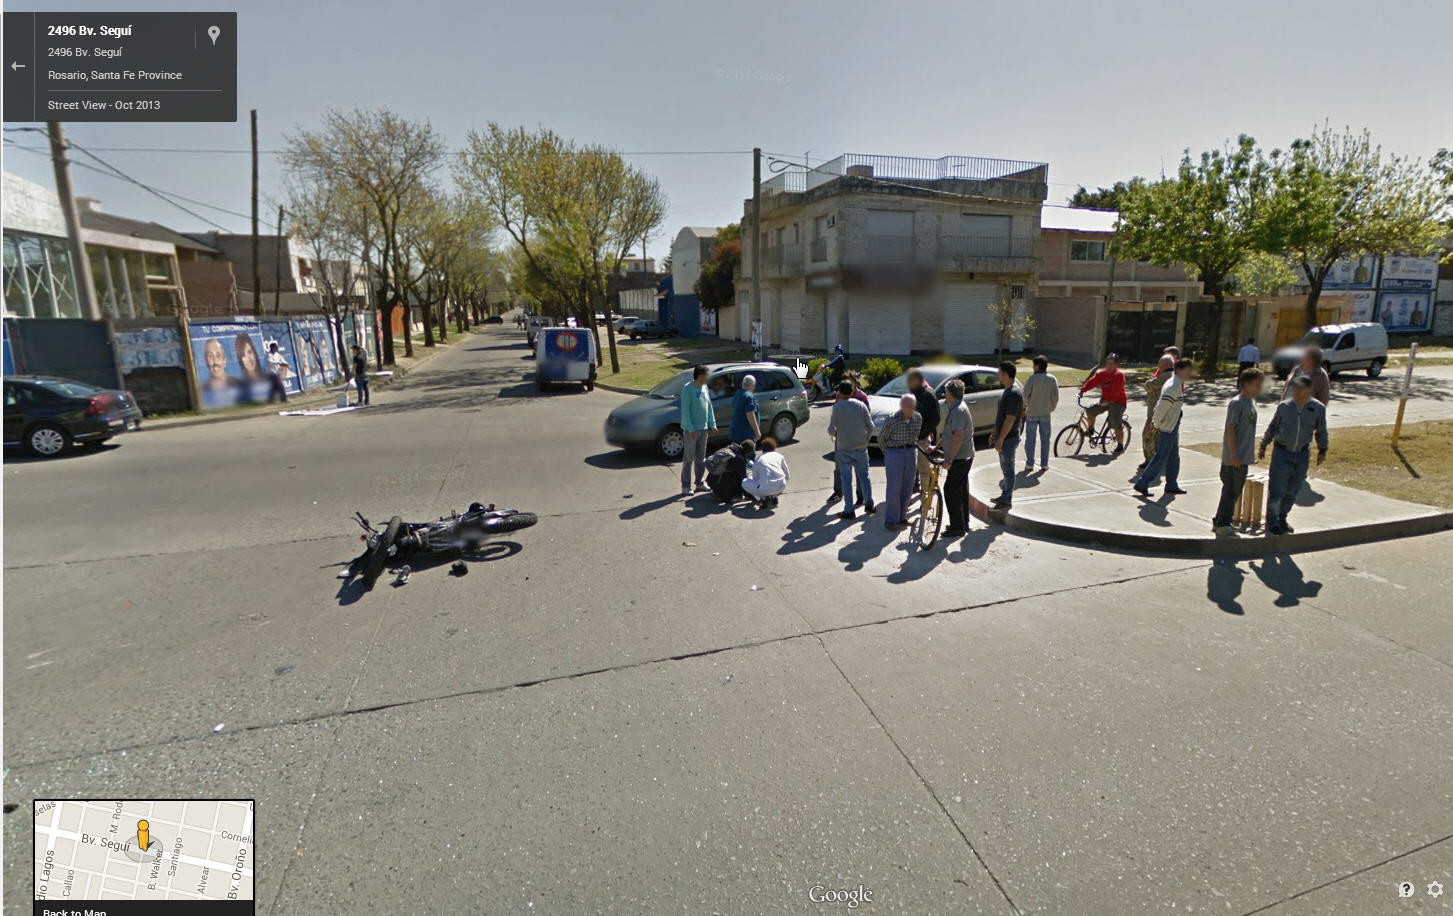 Another Accident captured by Google Street View Argentina